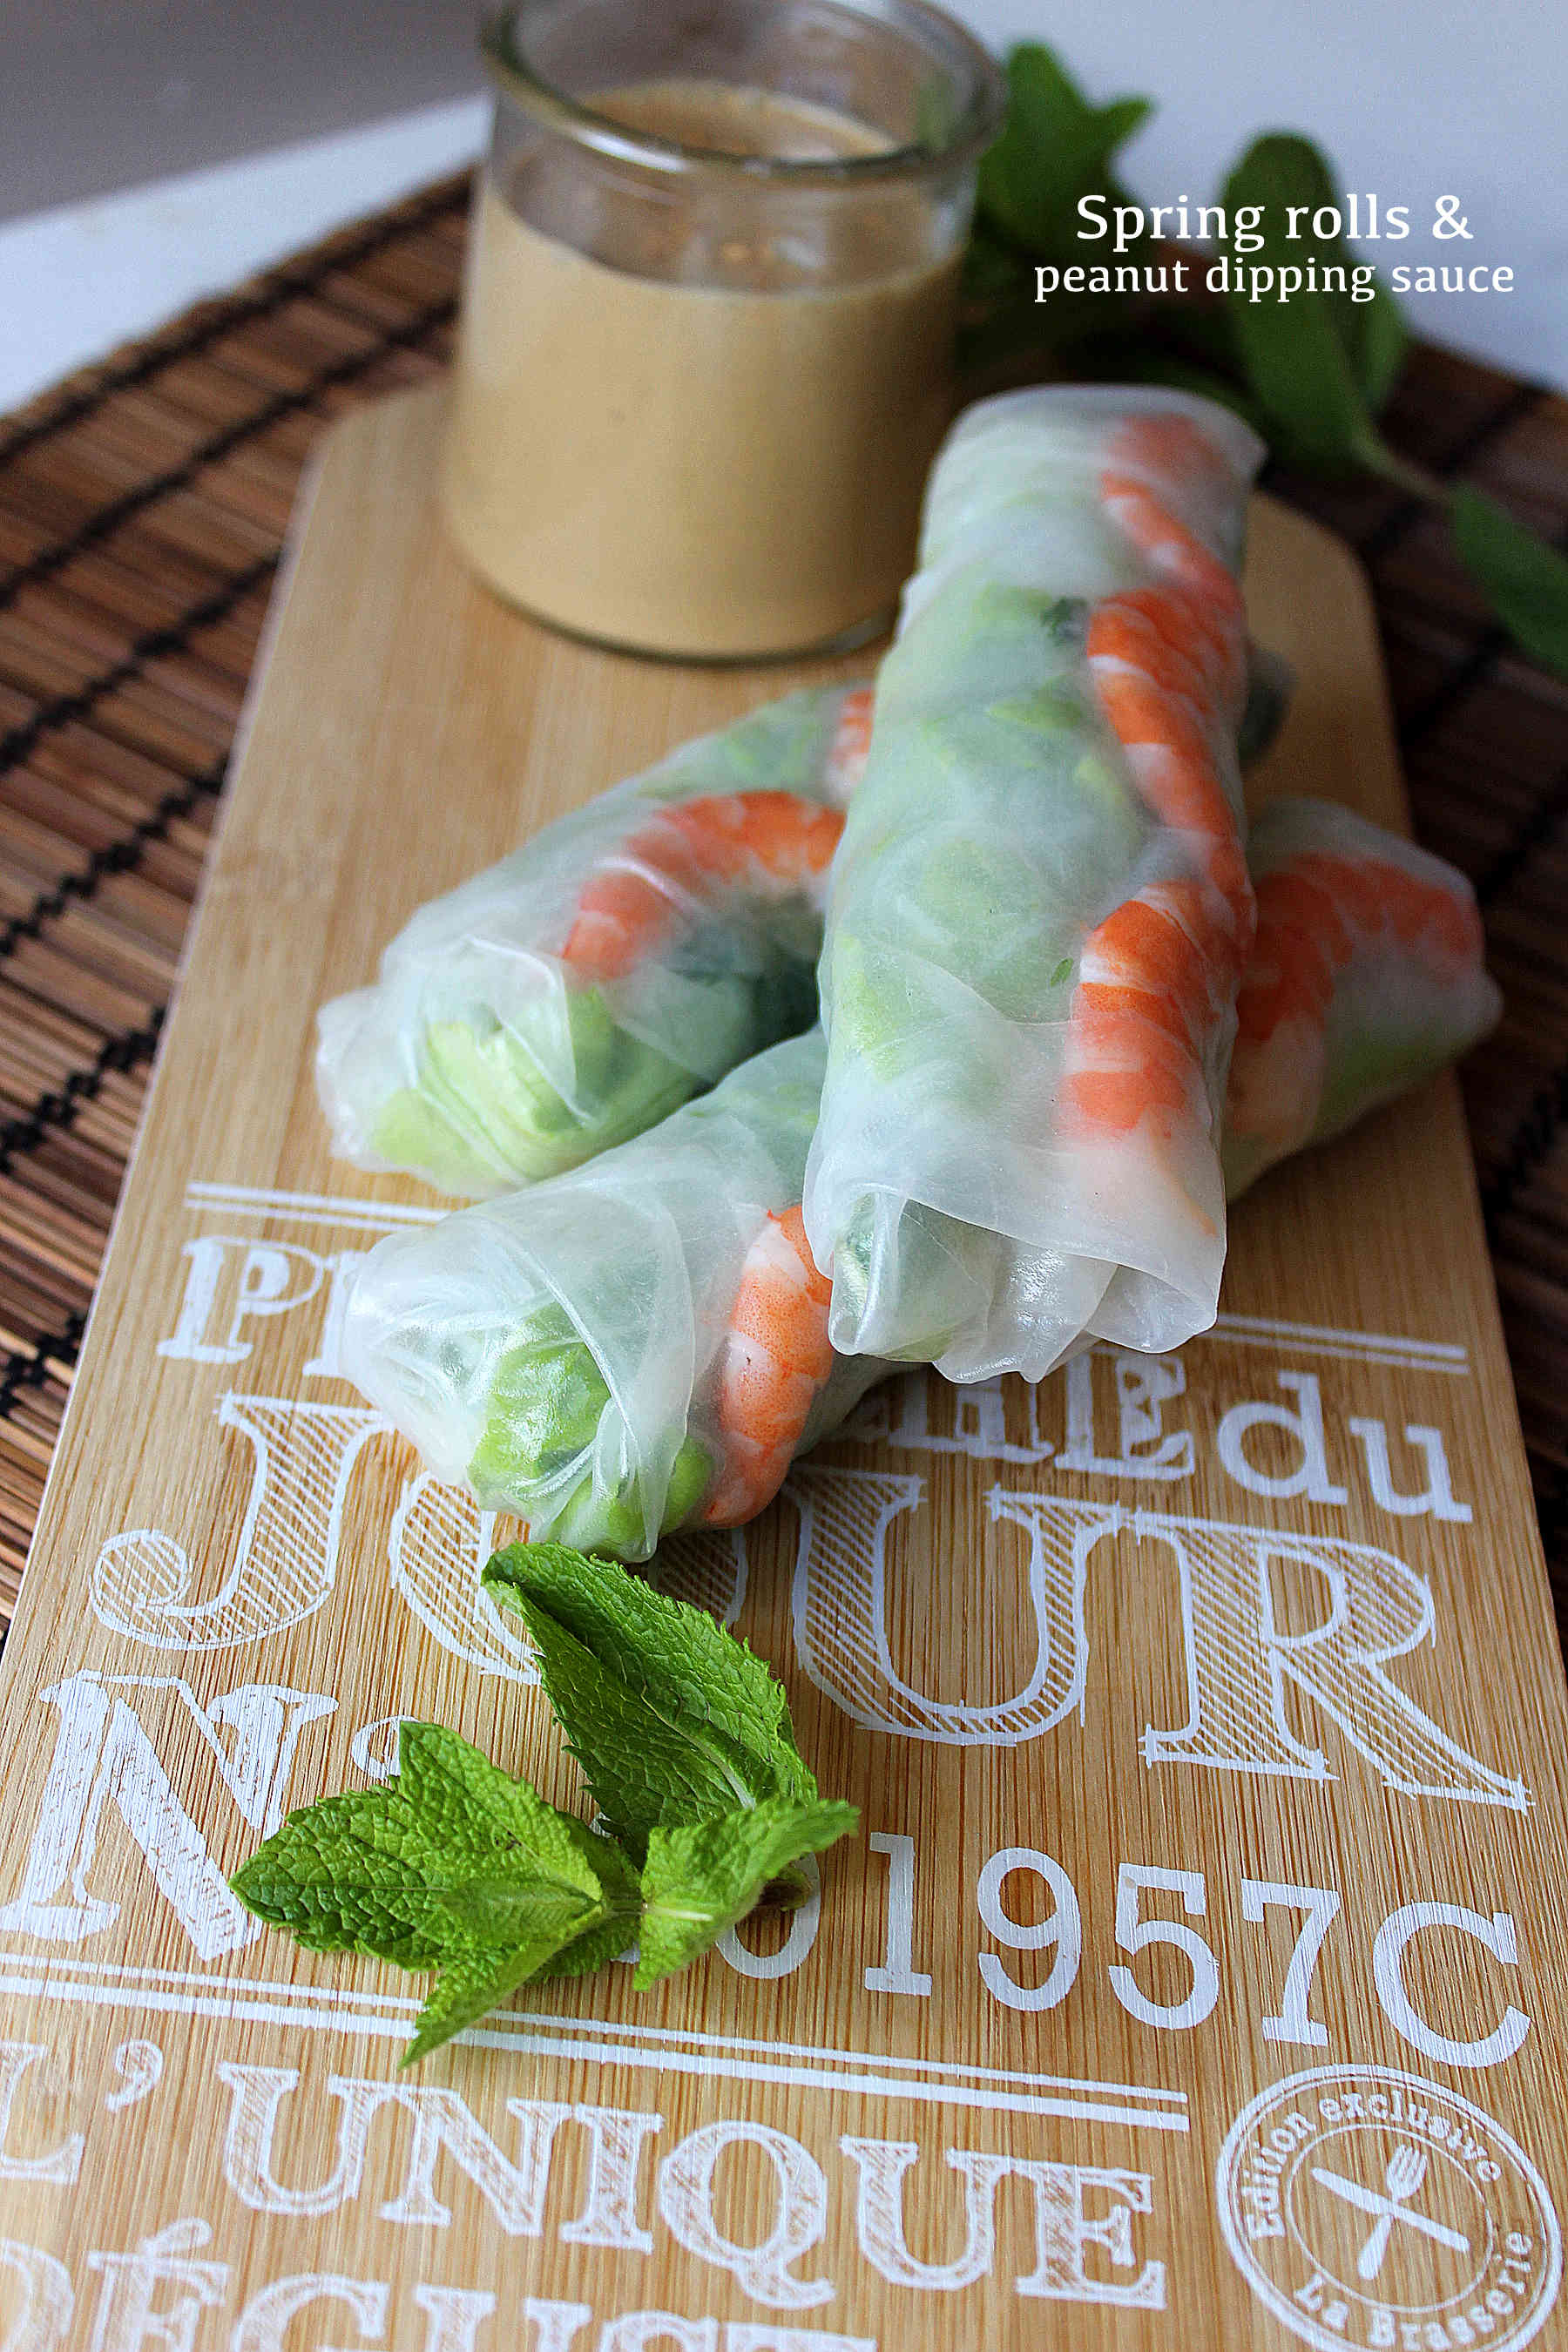 Spring rolls with peanut butter dipping sauce